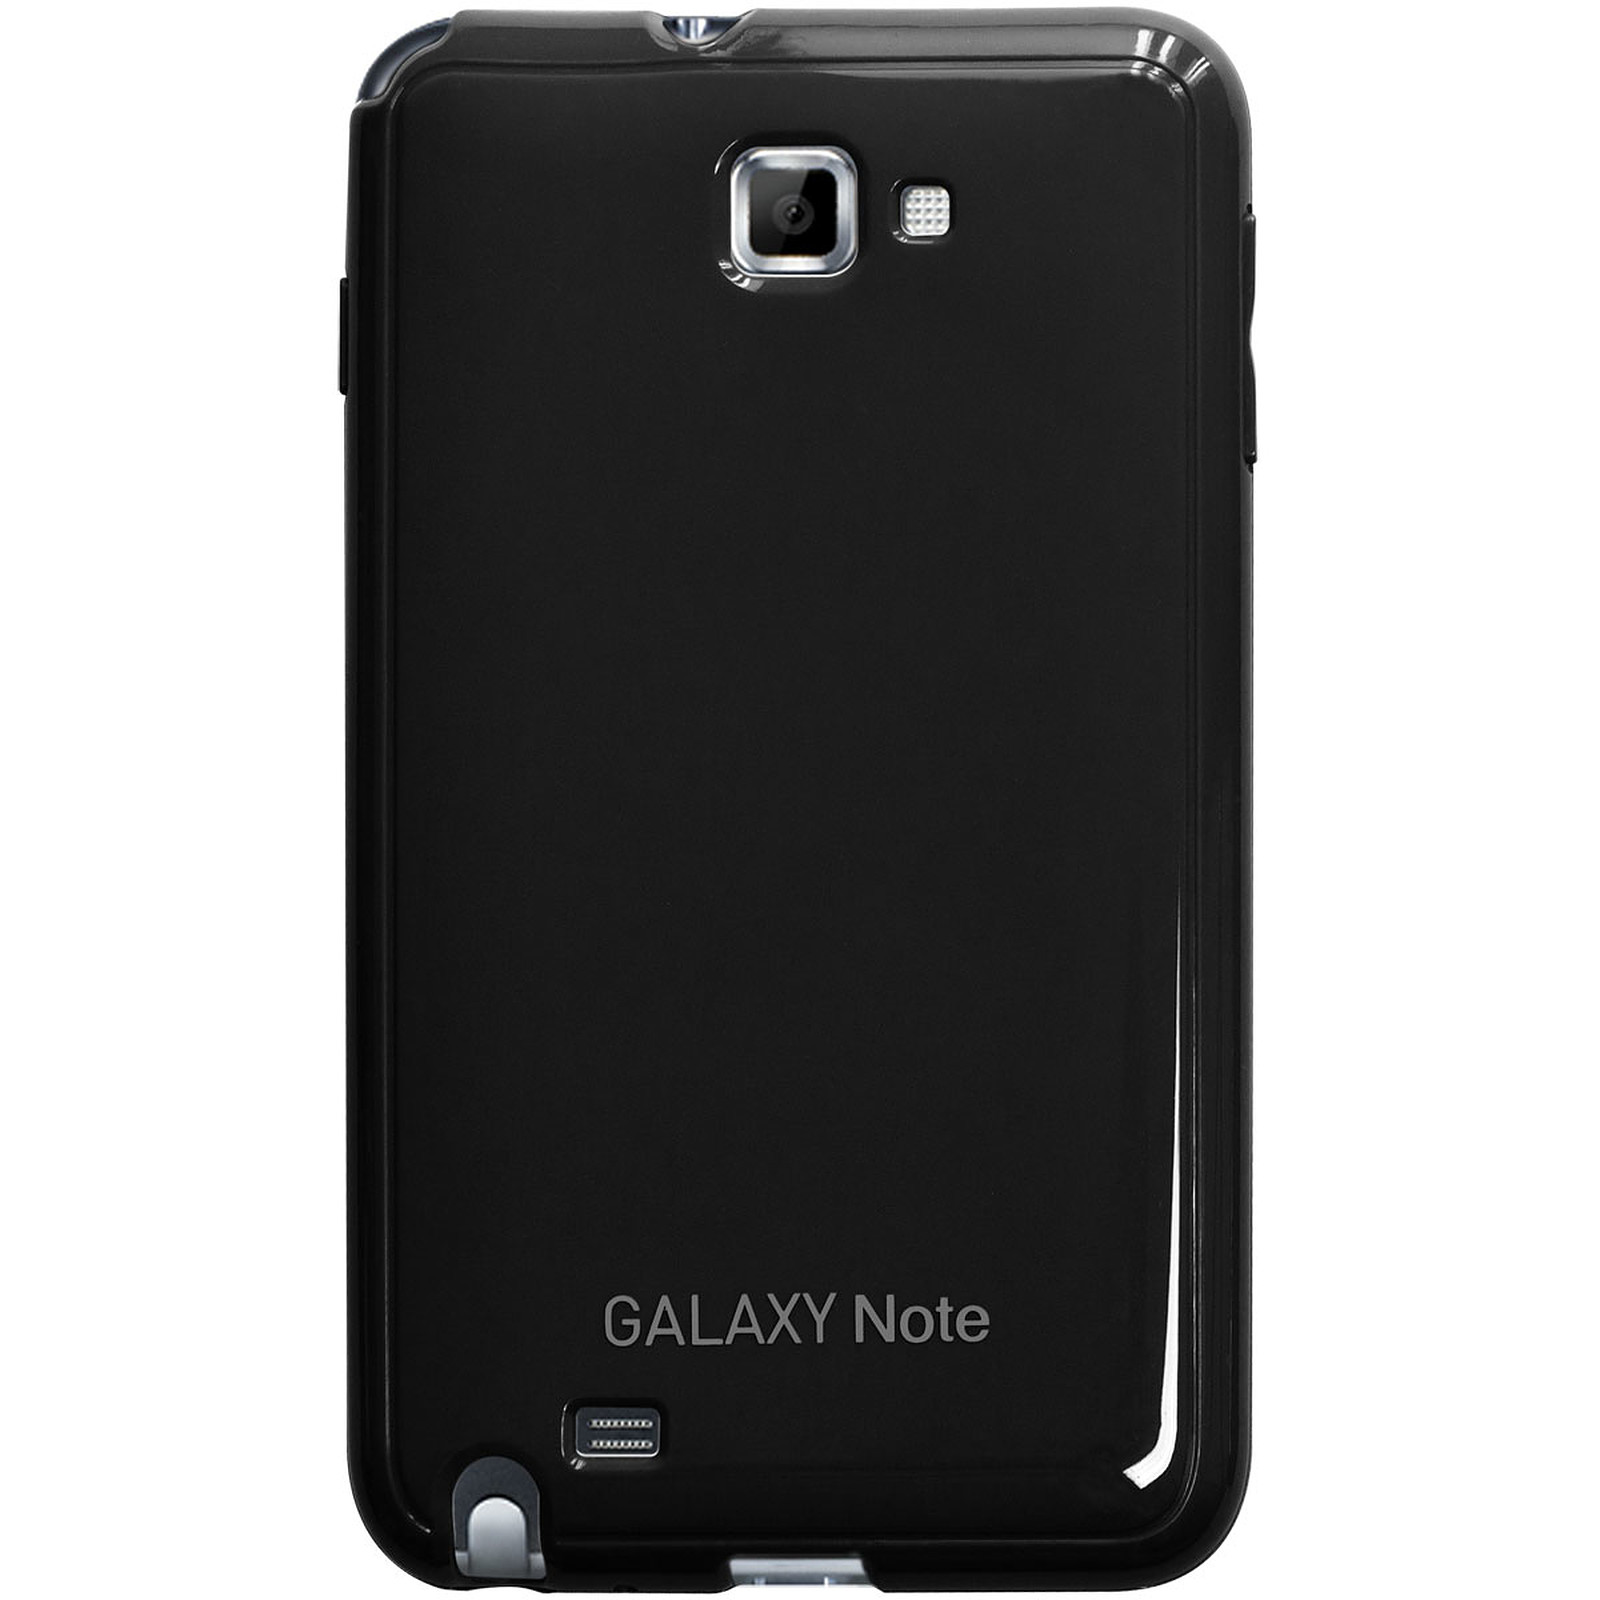 Anymode Made For Samsung Coque Glossy Noire pour Galaxy Note